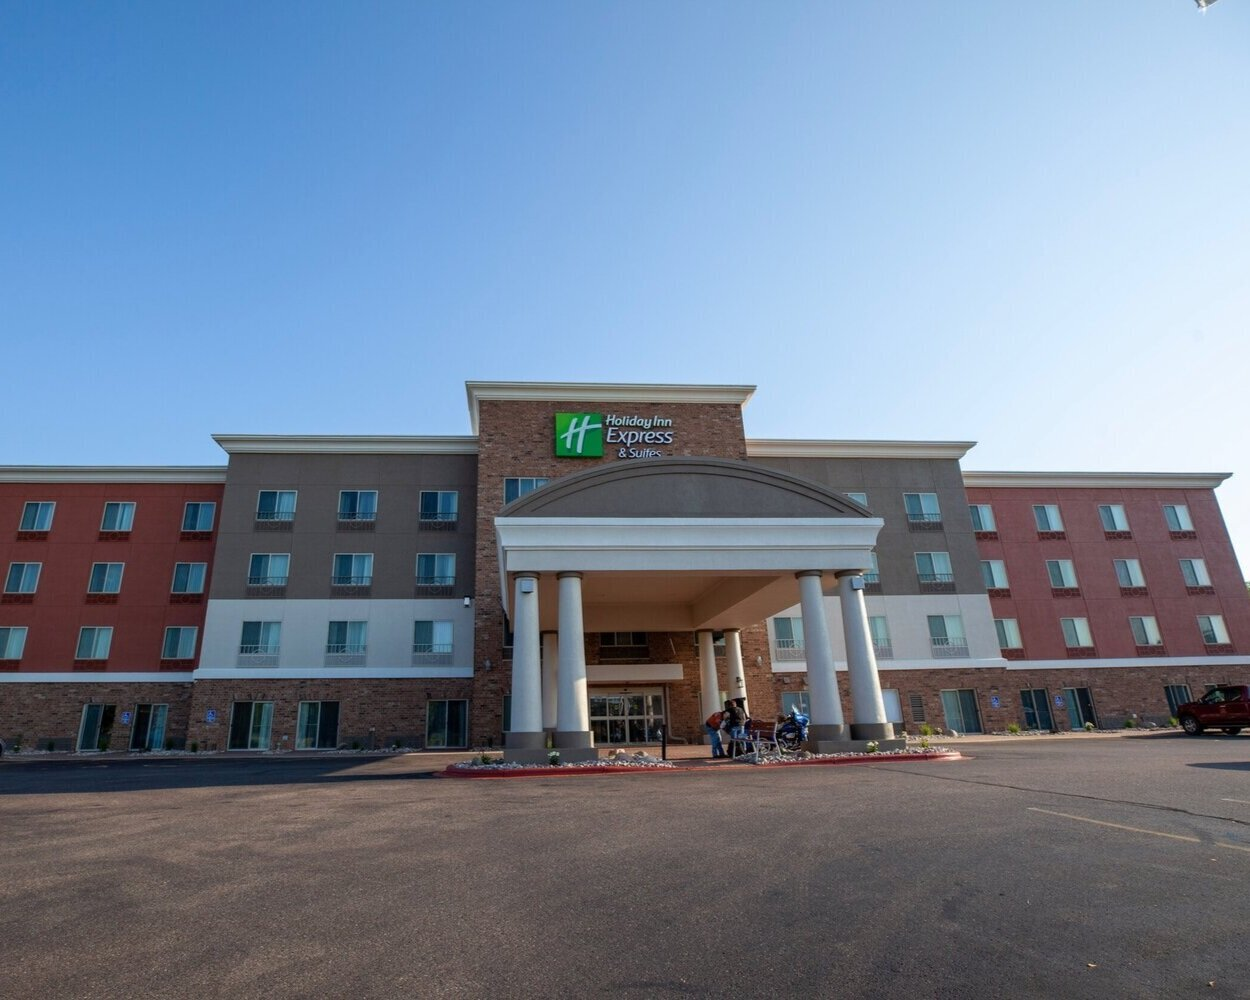 Holiday Inn Express and Suites, Weston, WI